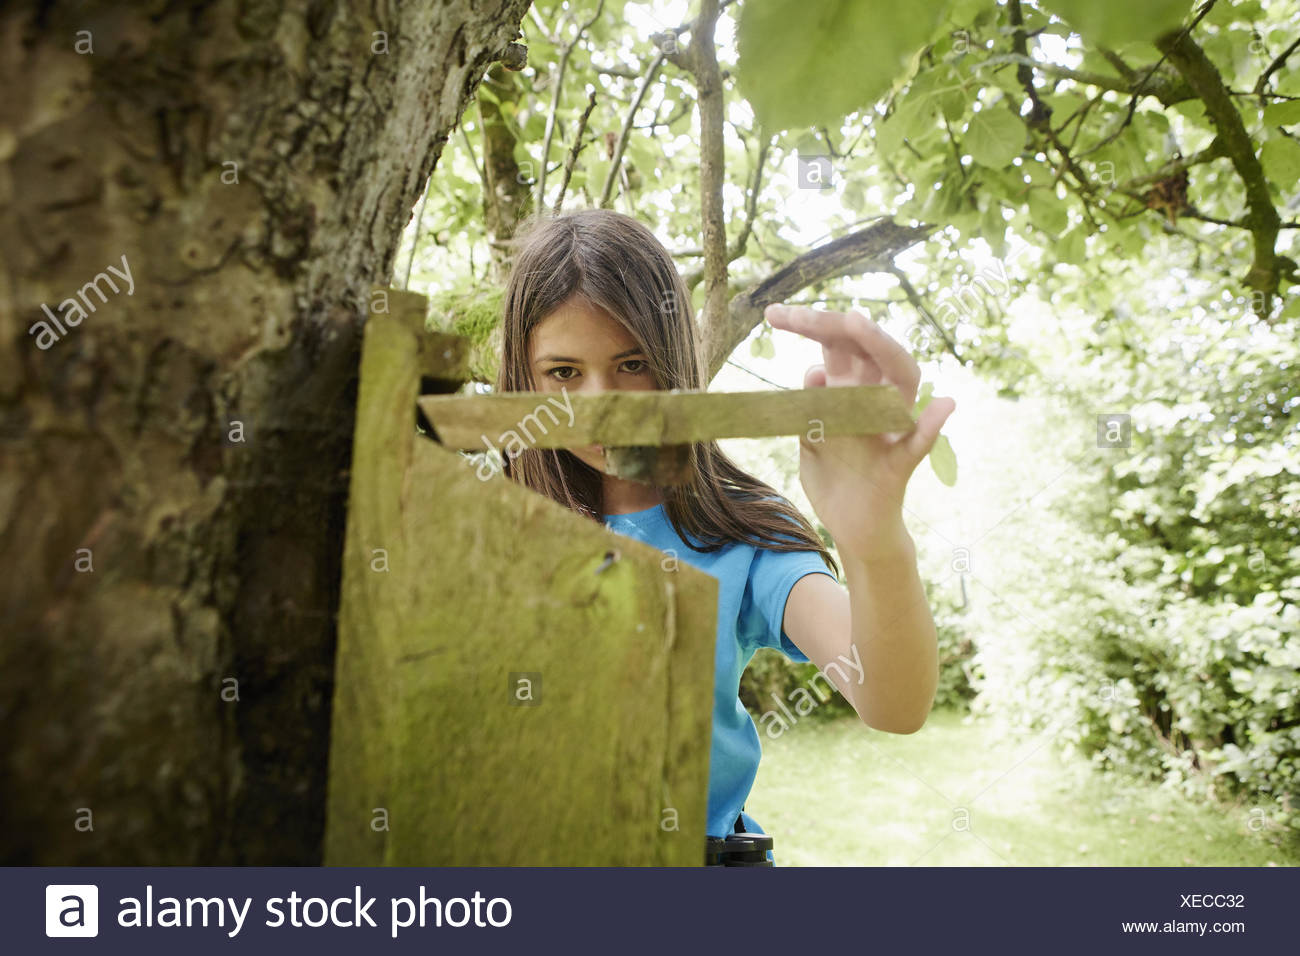 A young girl, a birdwatcher, checking a nesting box on a tree trunk. - Stock Image